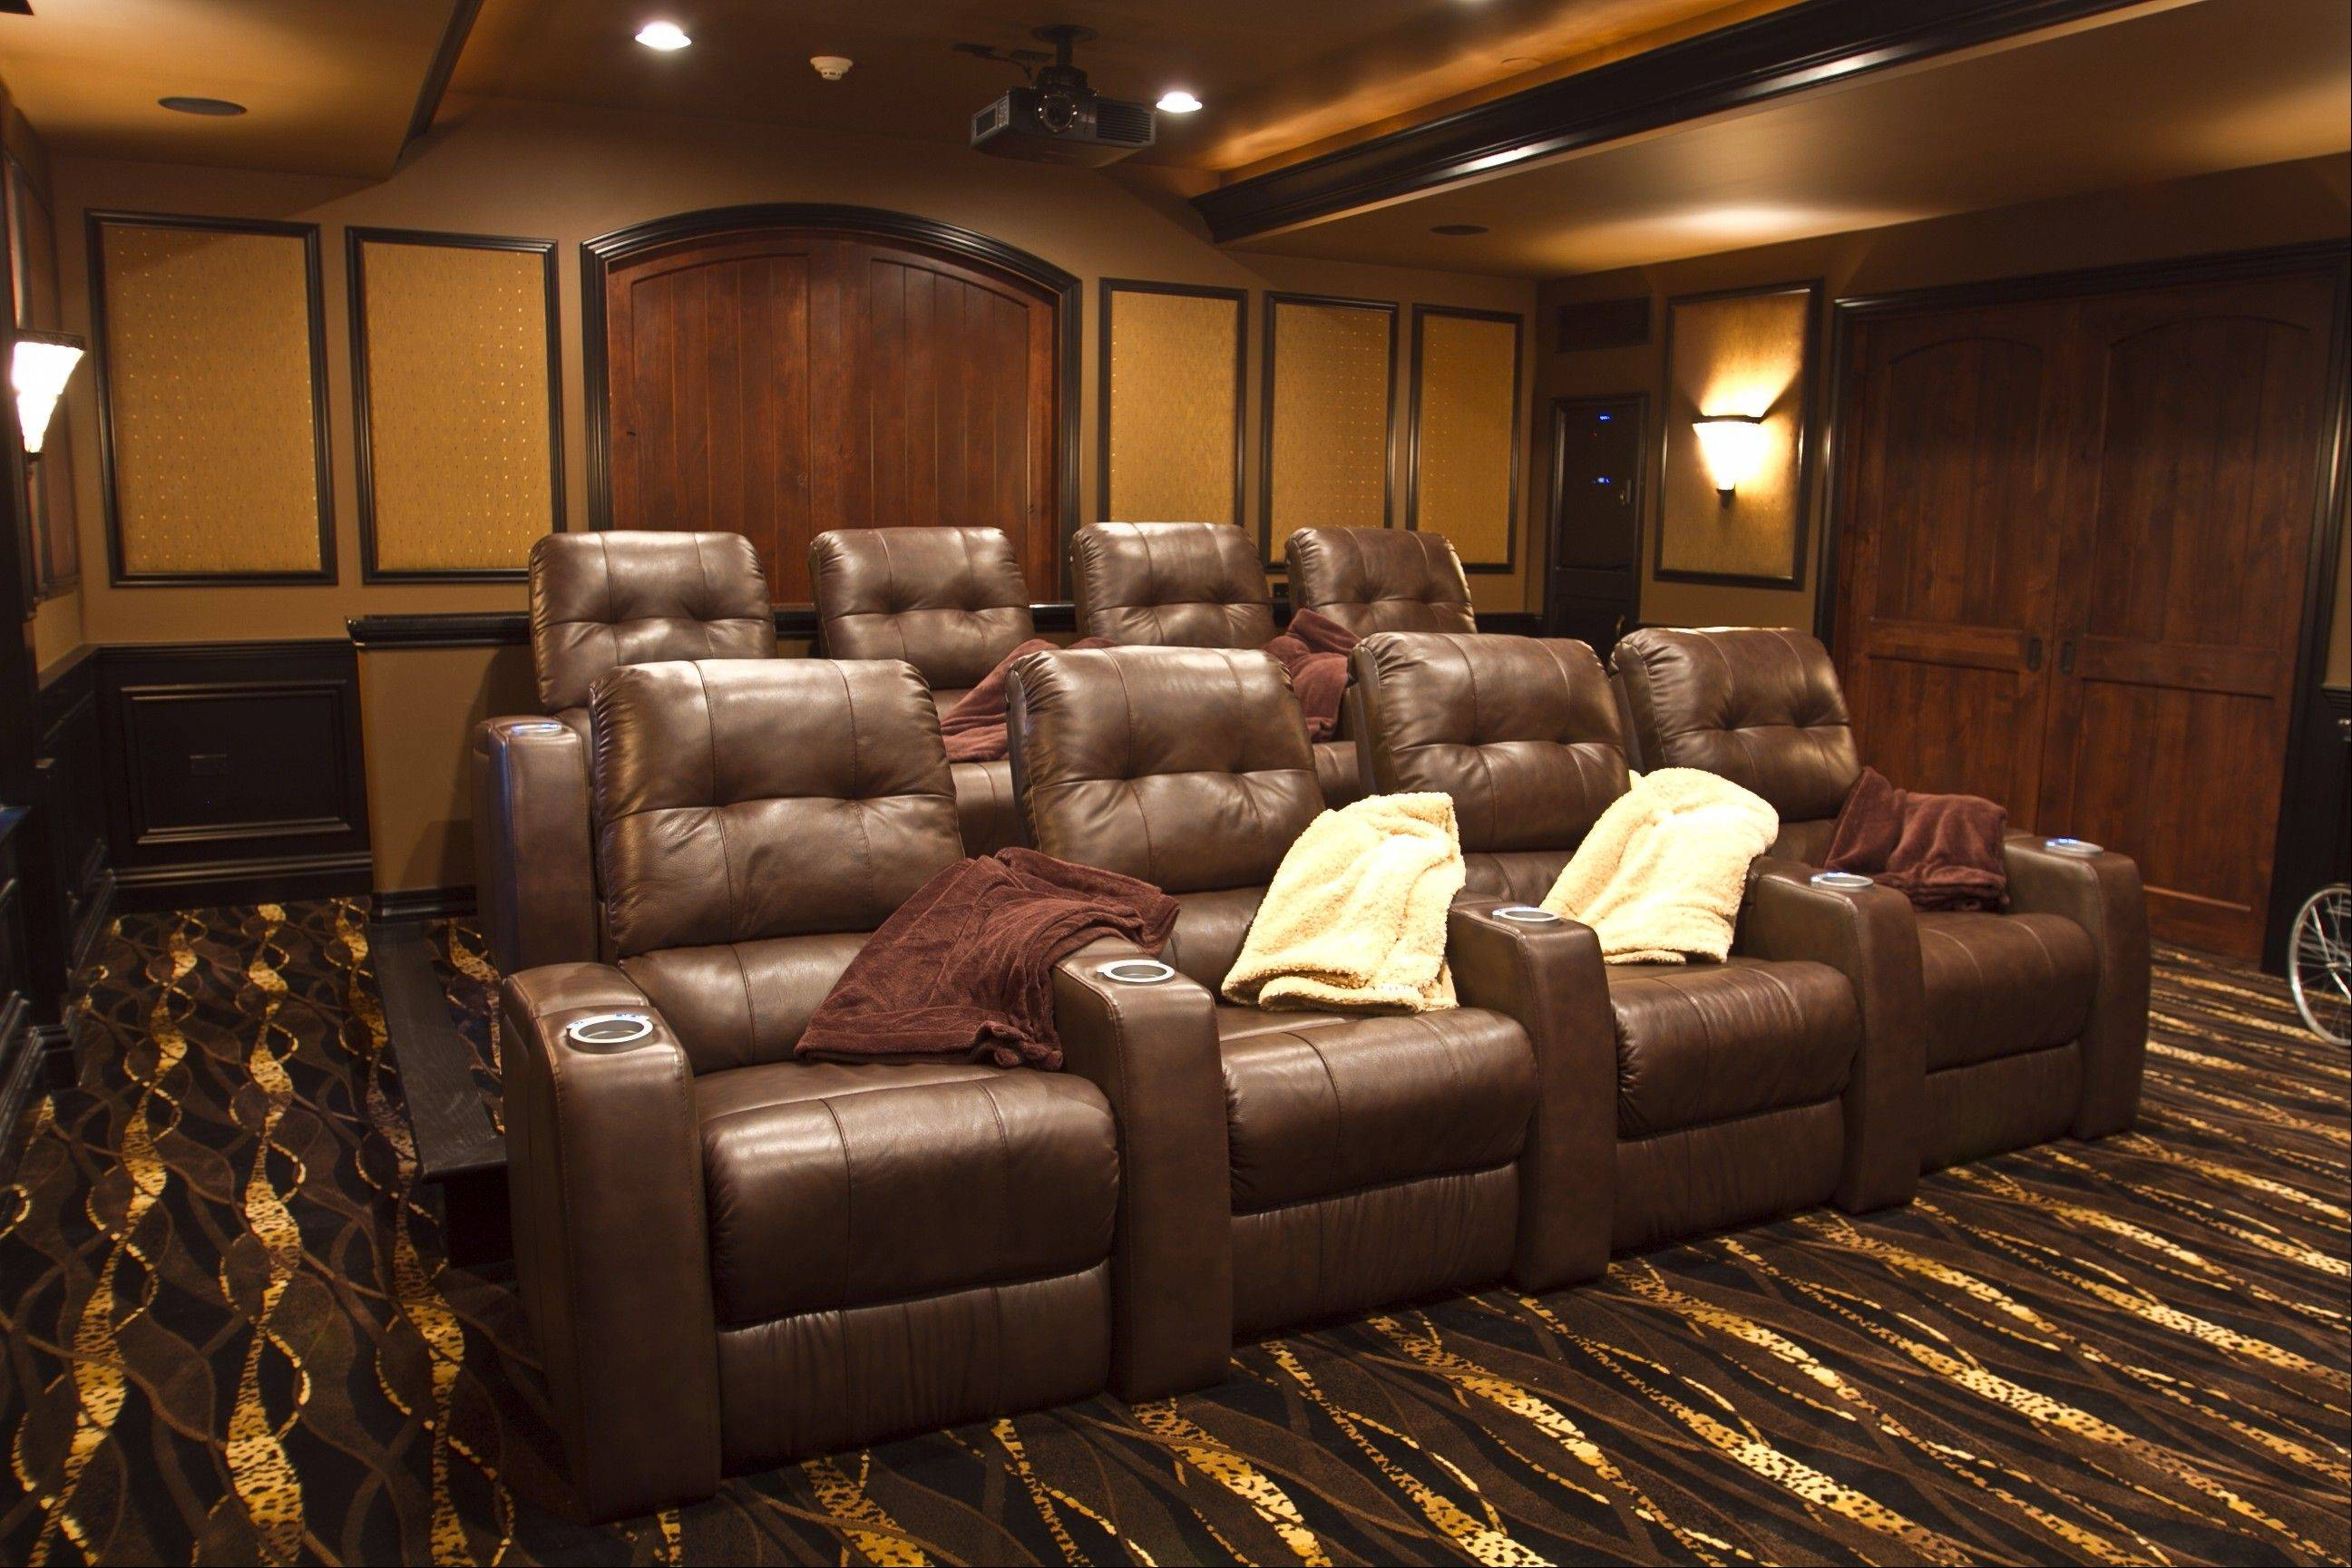 A home theater is a very common specialty room requested when people build their own custom homes.